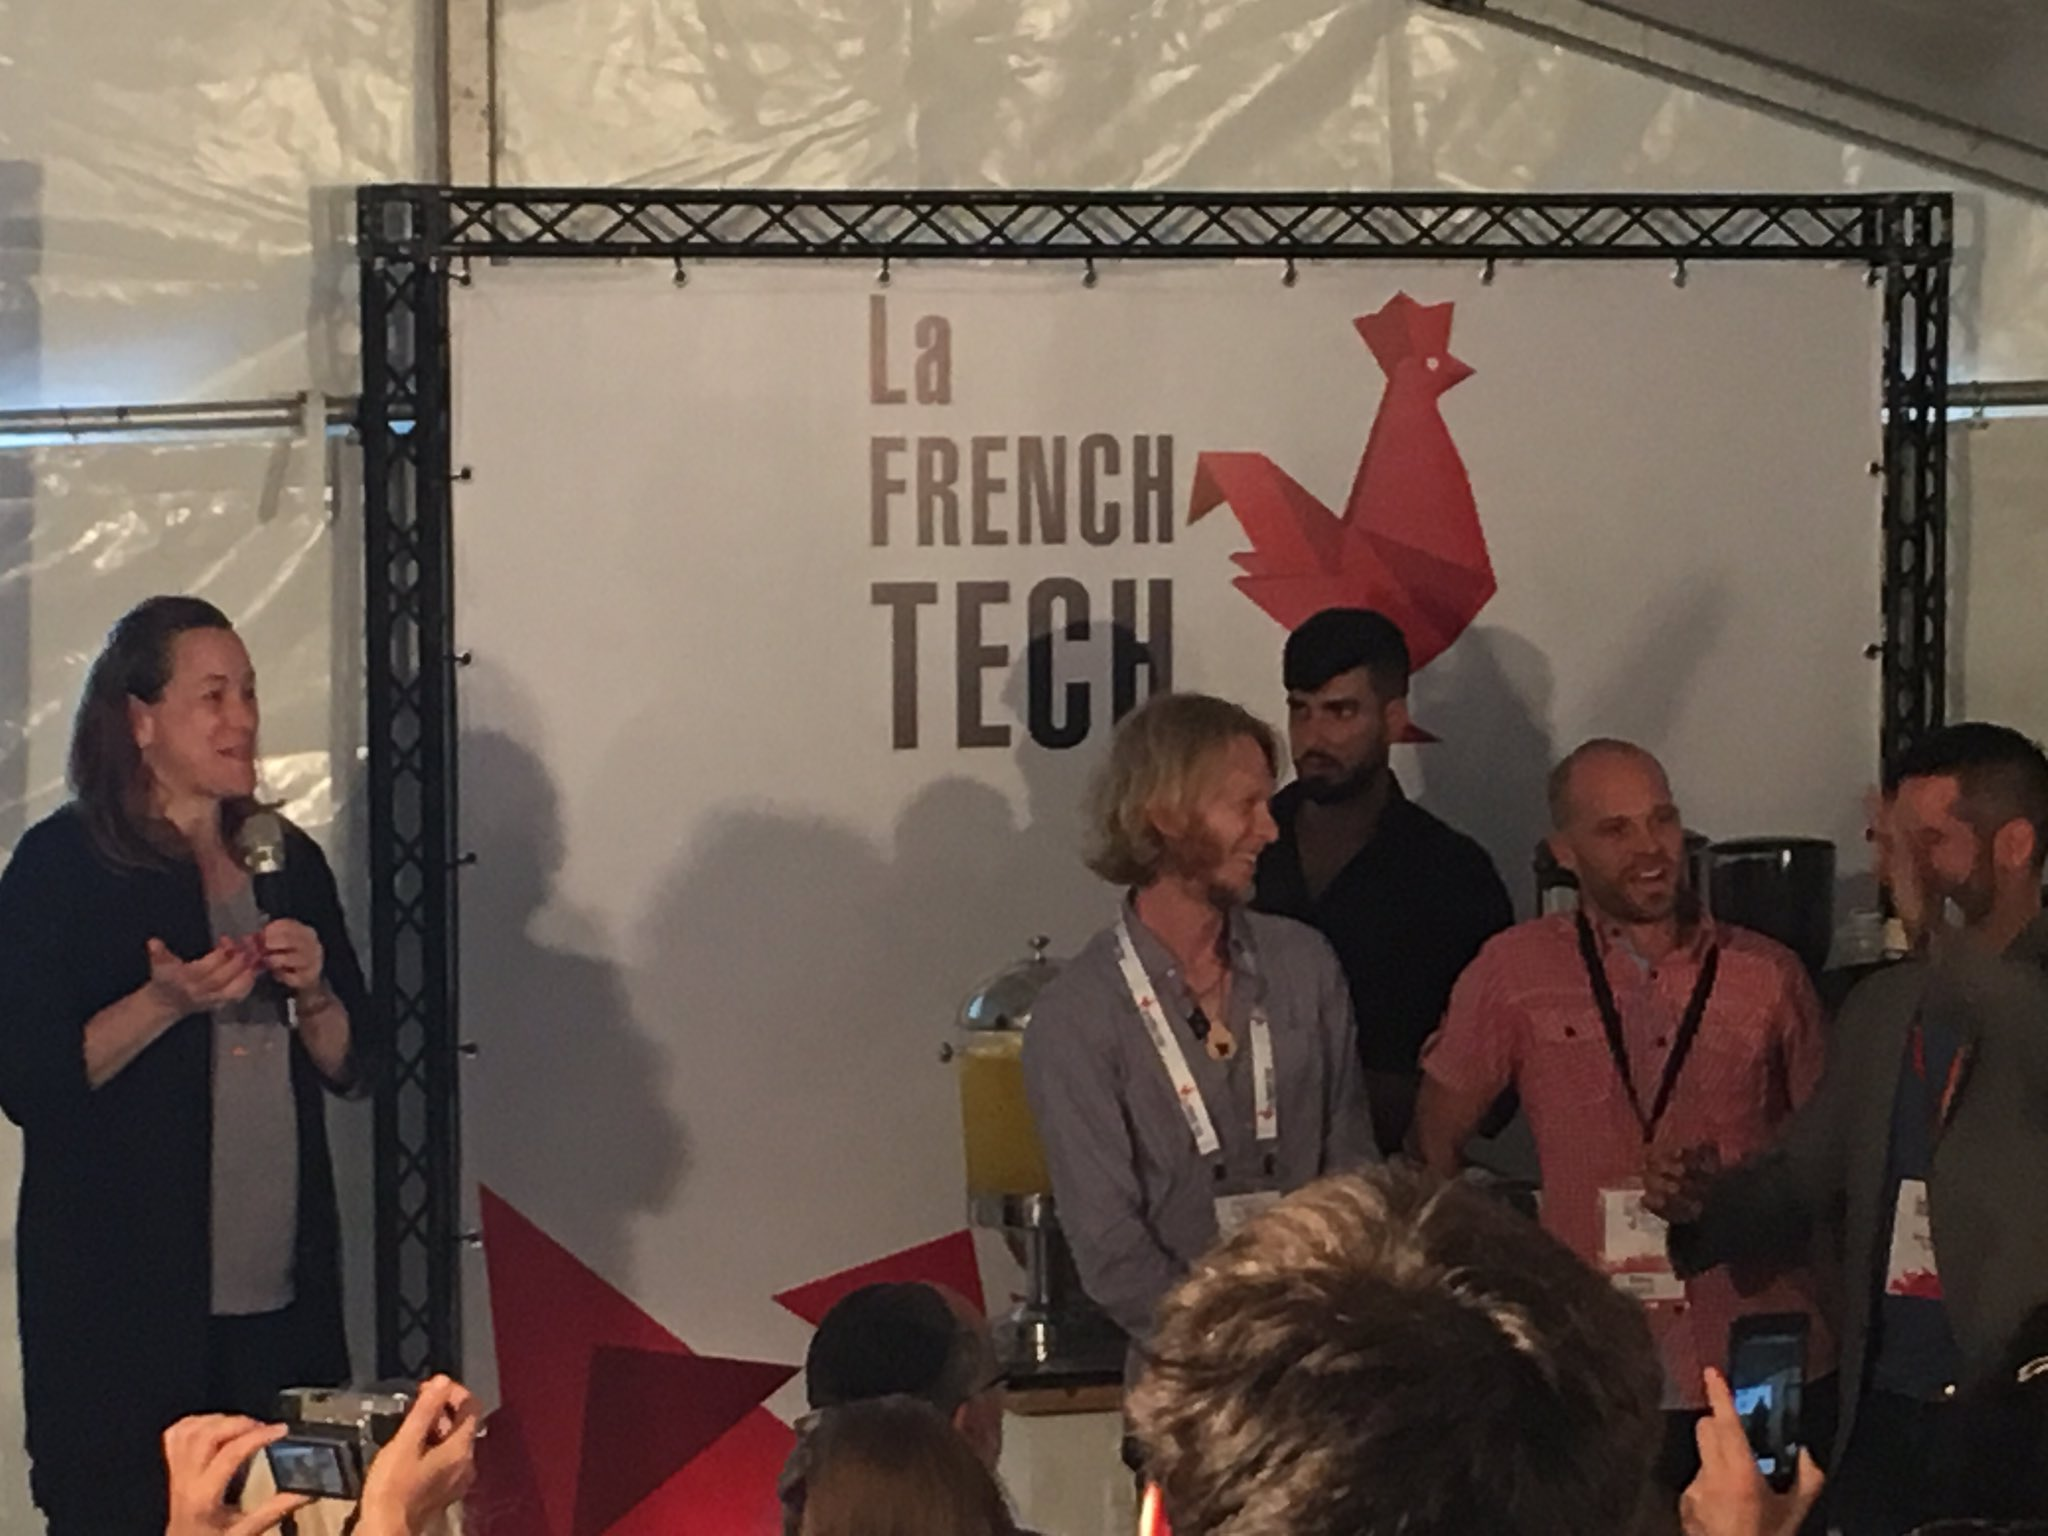 @axellelemaire introduces the #startup Pitch session #hackdld #FrenchTechHouse @DLDConference https://t.co/XVeCClJ3FZ